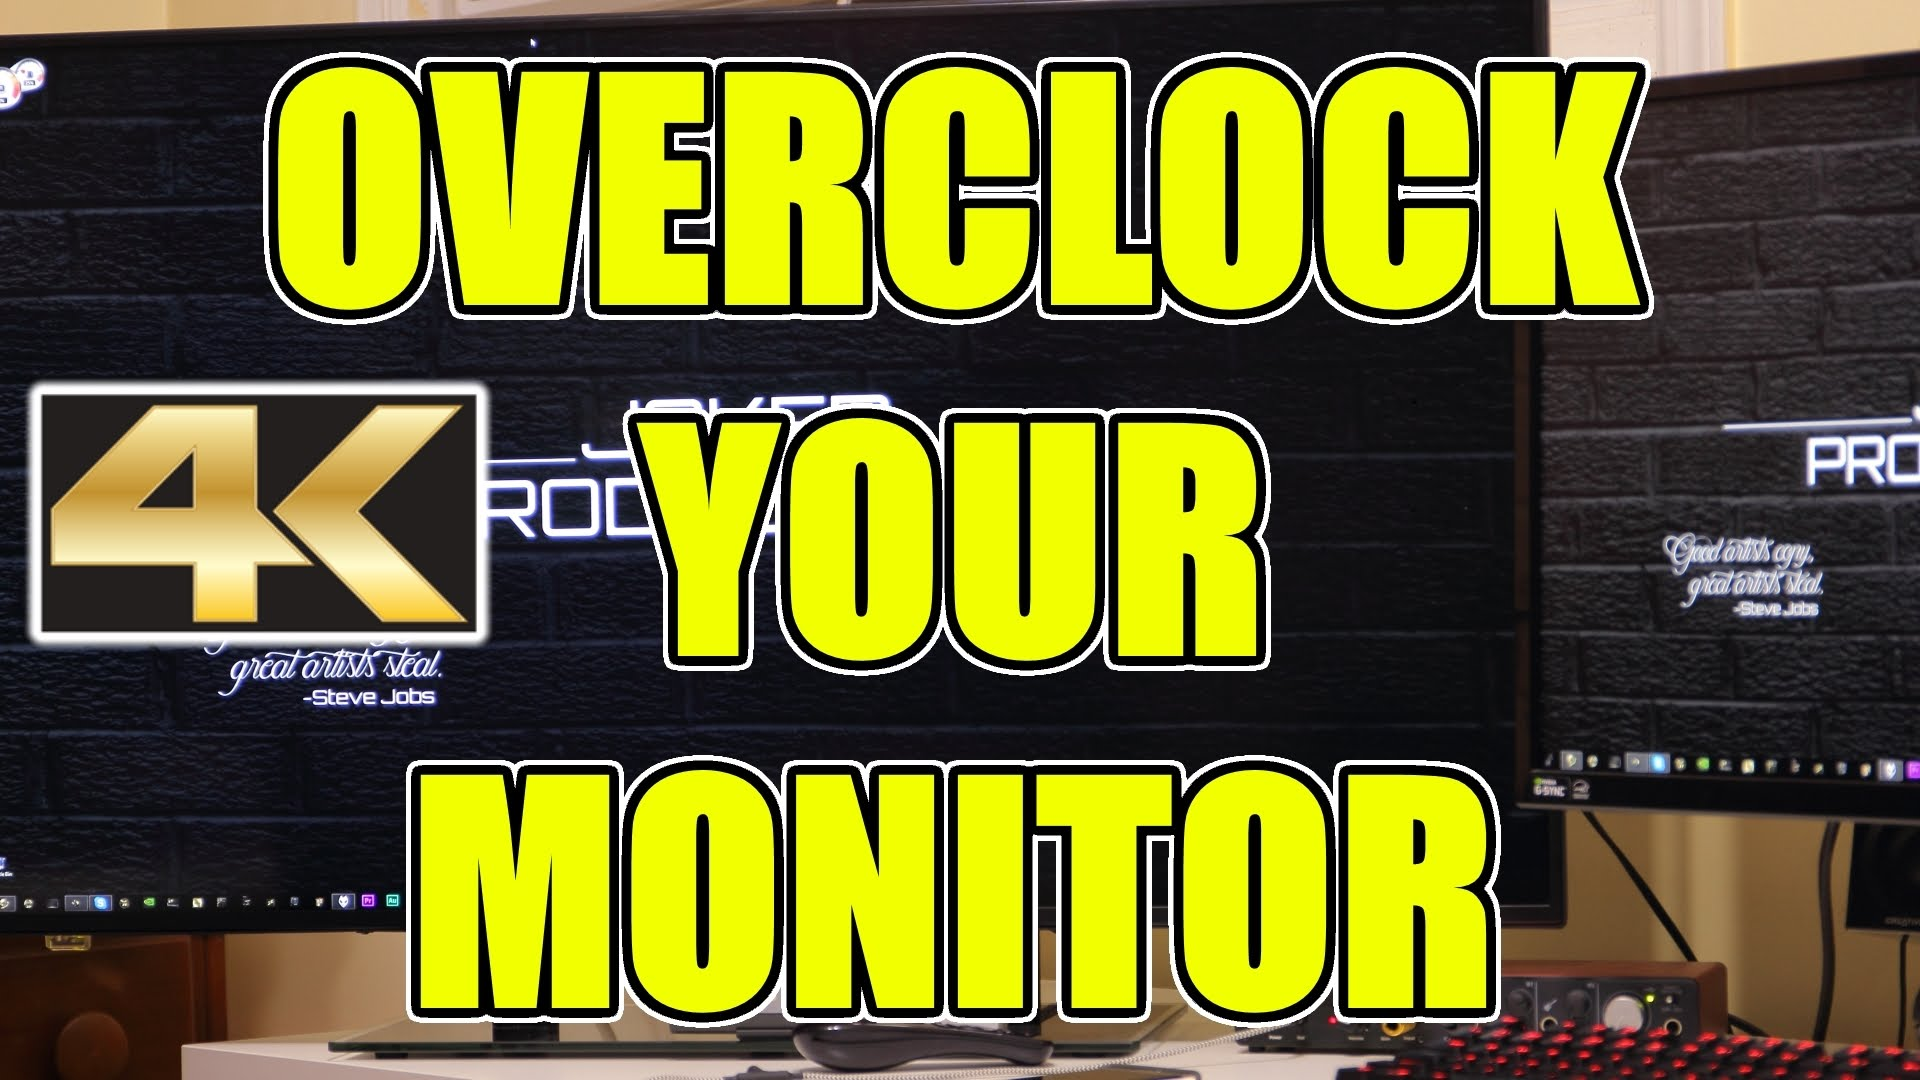 Overclock monitor, ecco come fare